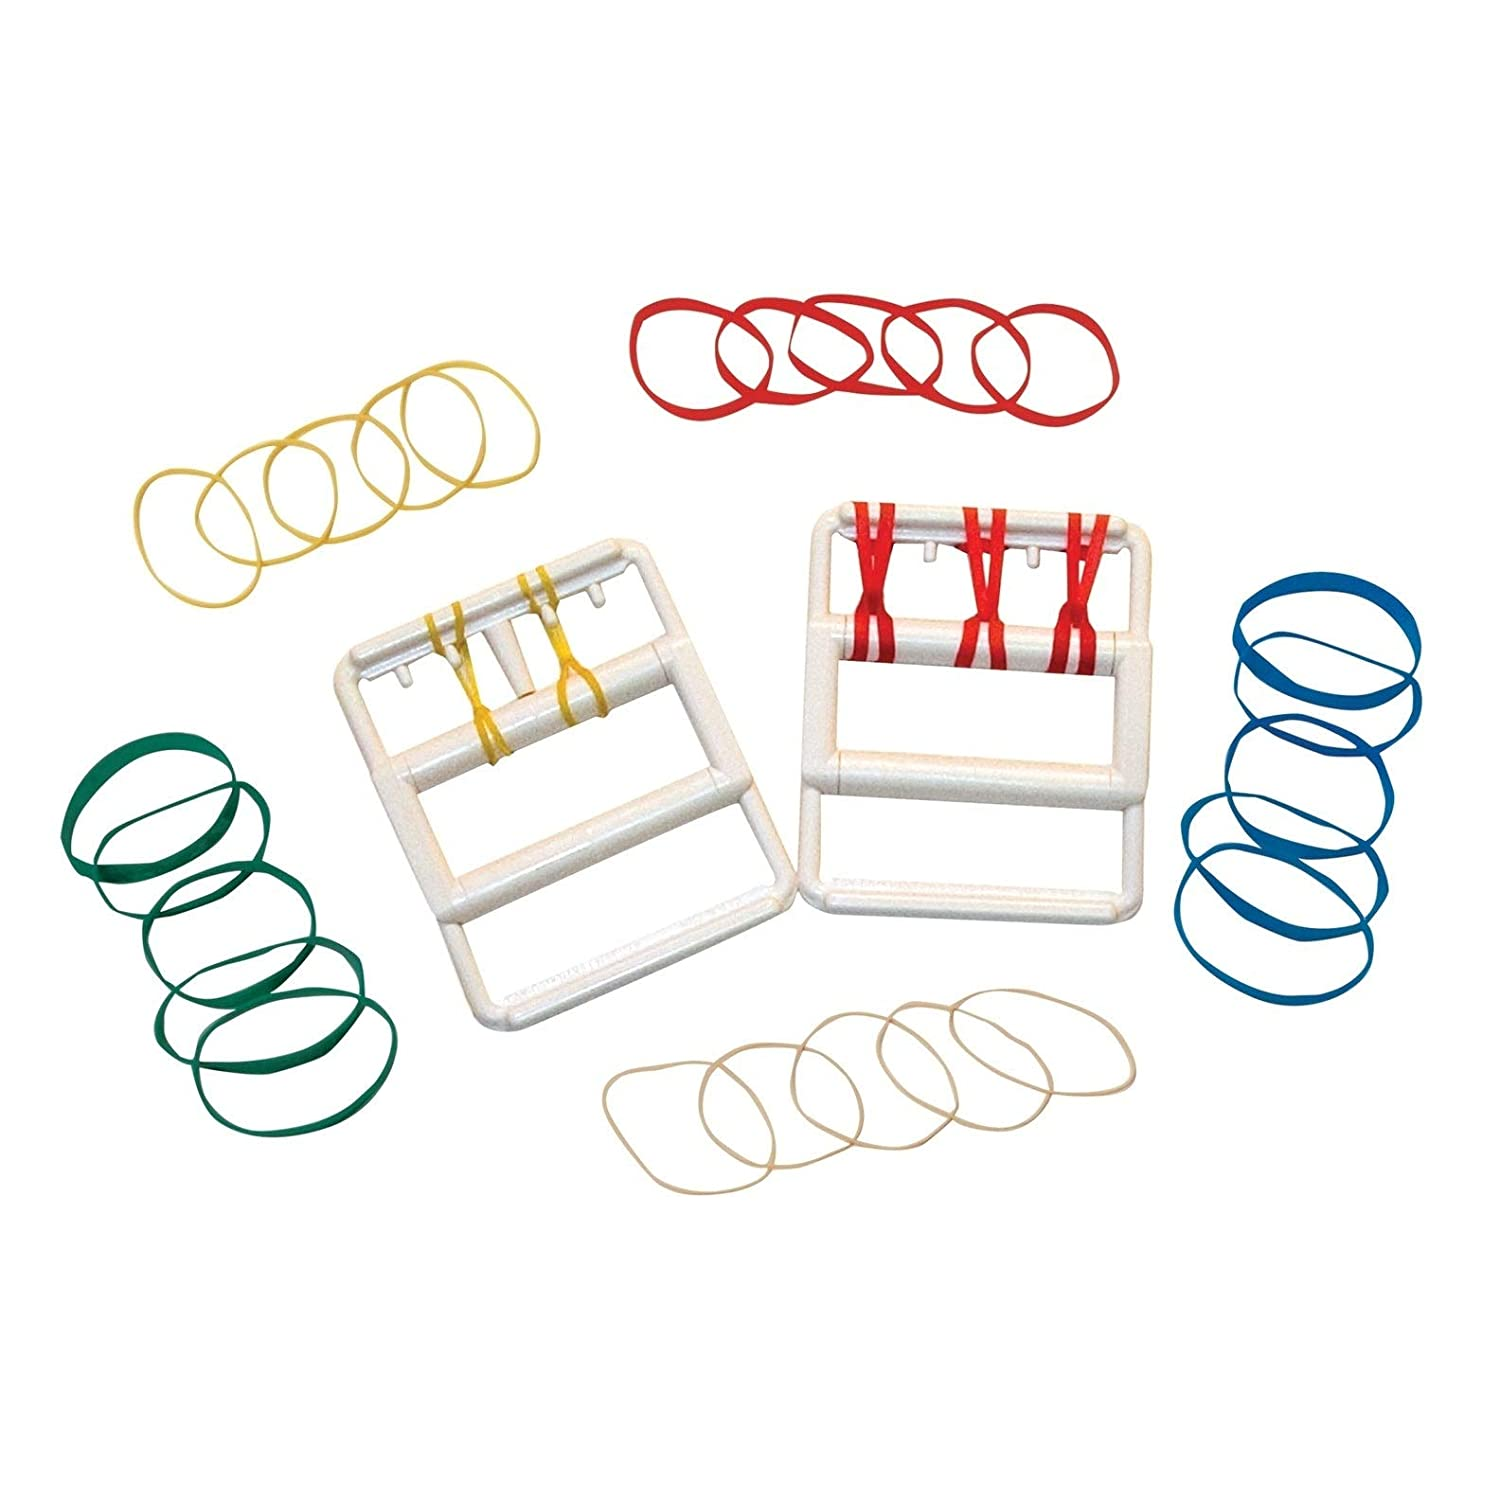 CanDo 10-1865 Latex Austin Mall Free Rubber Band with 25 Exerciser Hand Fees free!!